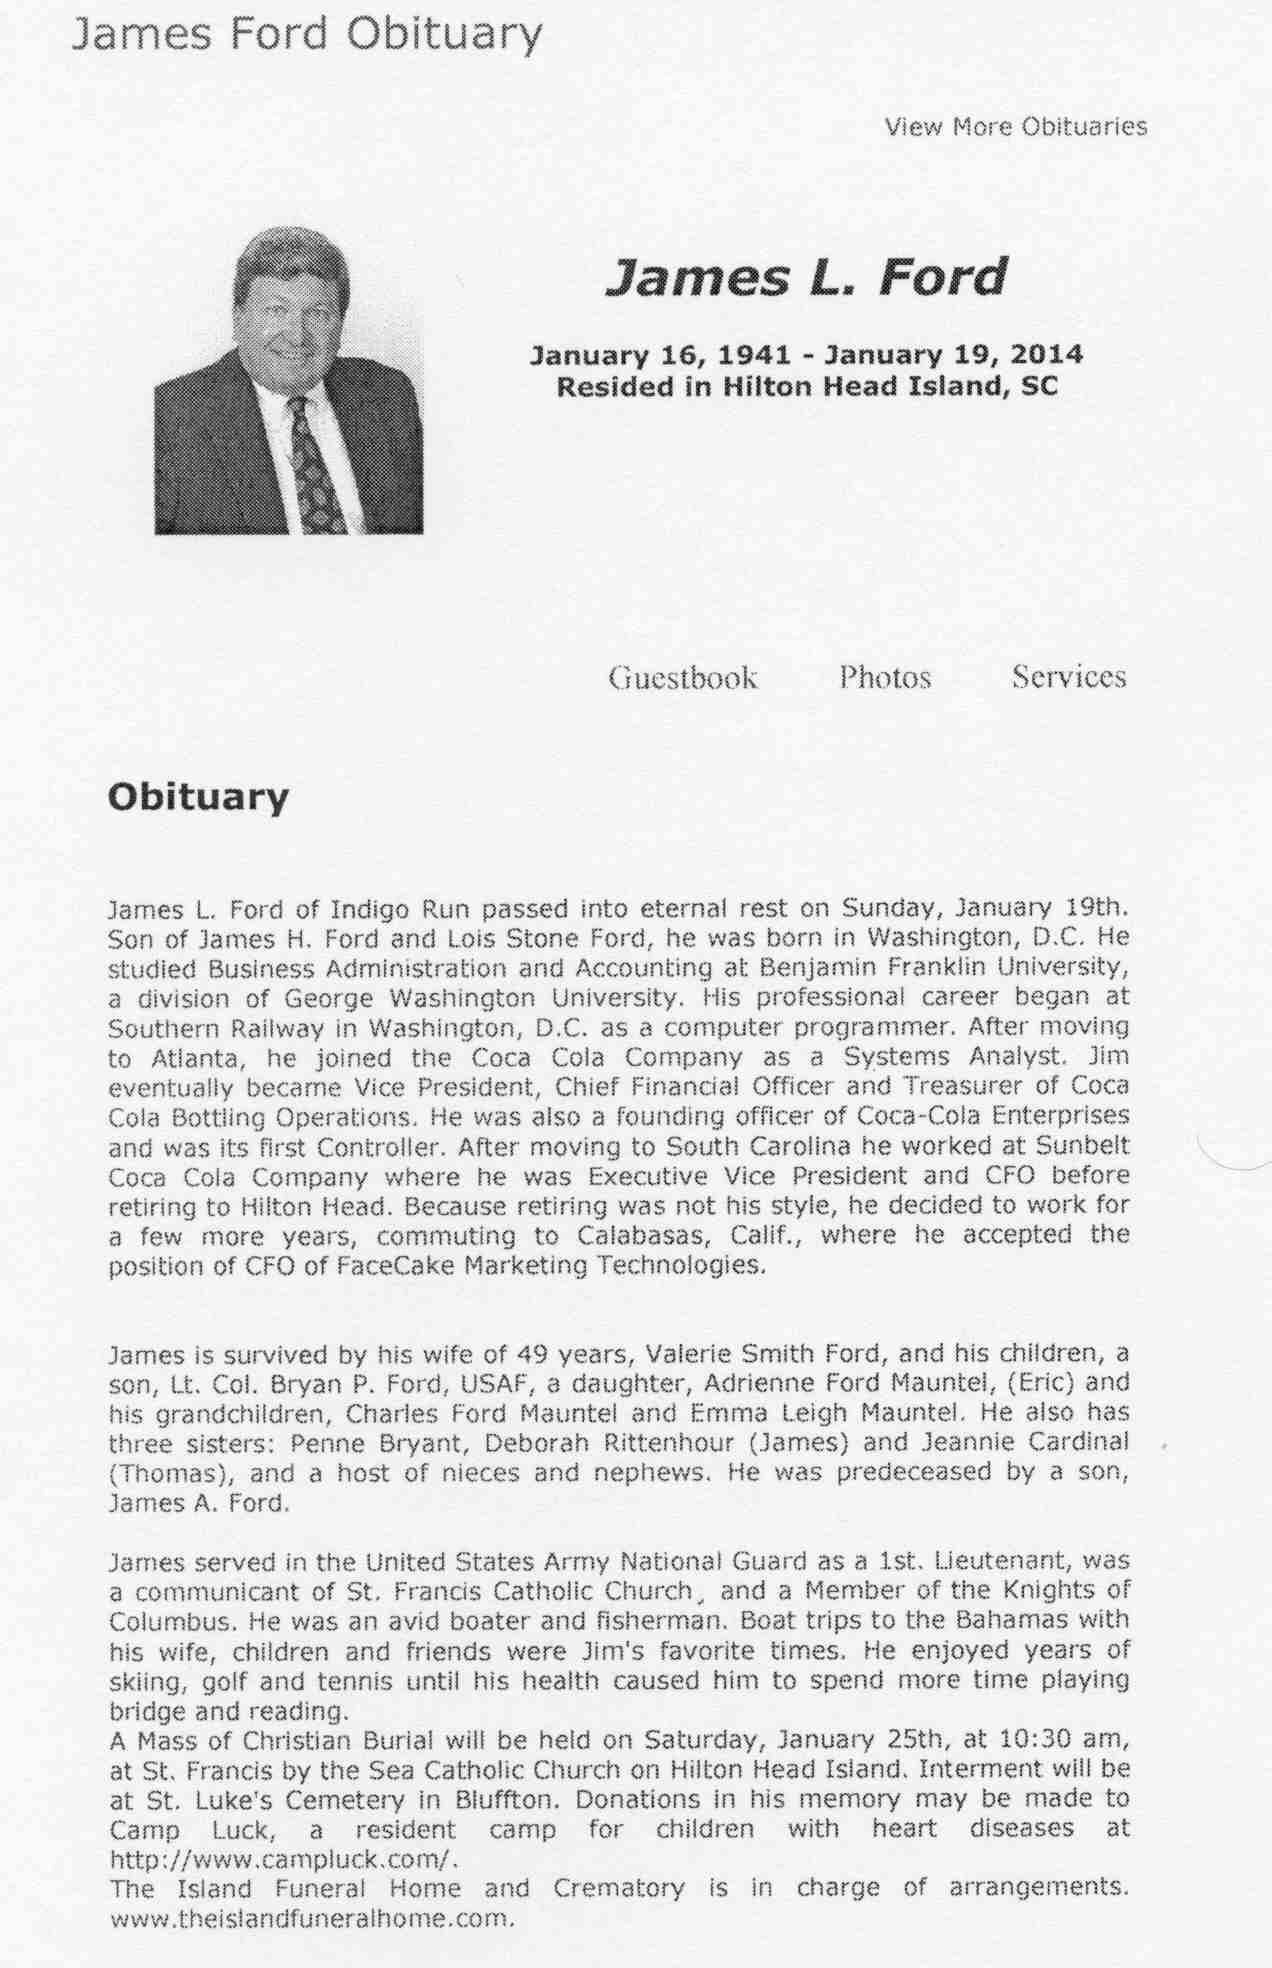 Ford, James L., obituary - 001